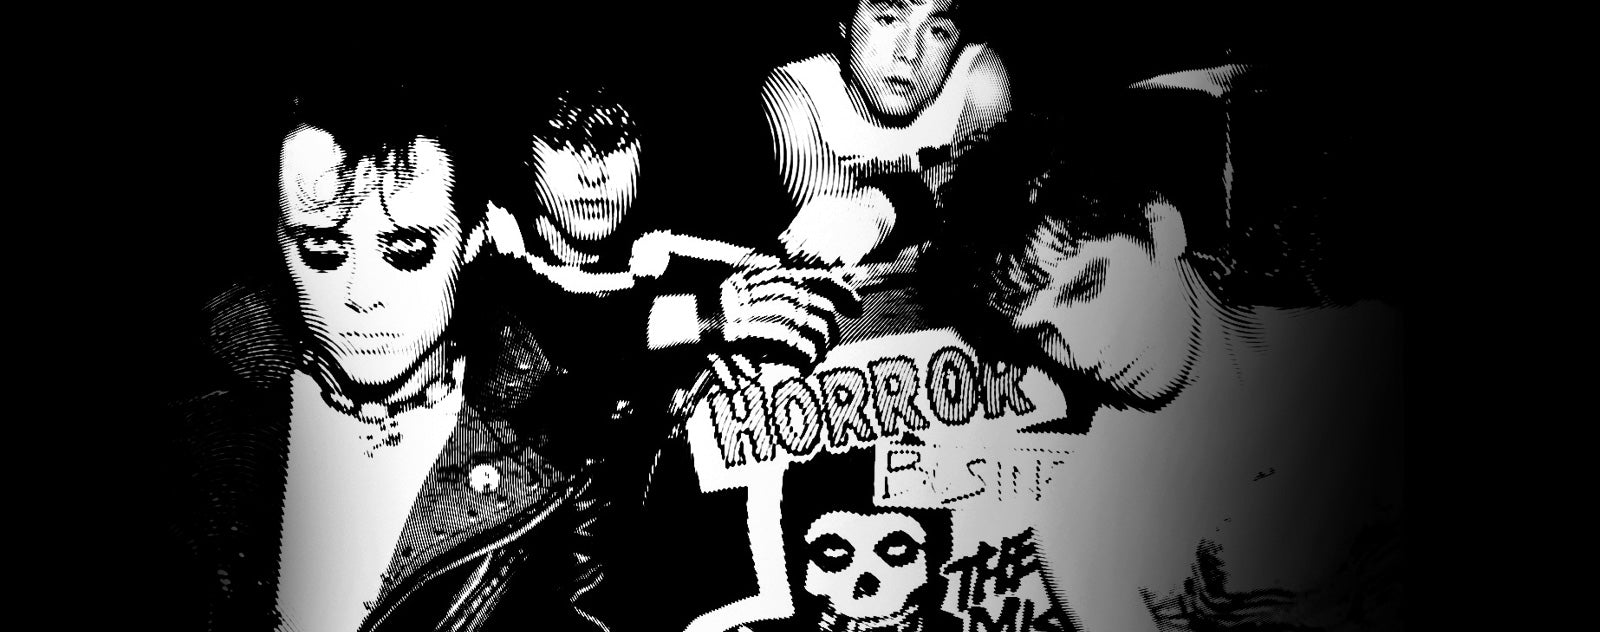 Groupe The Misfits.